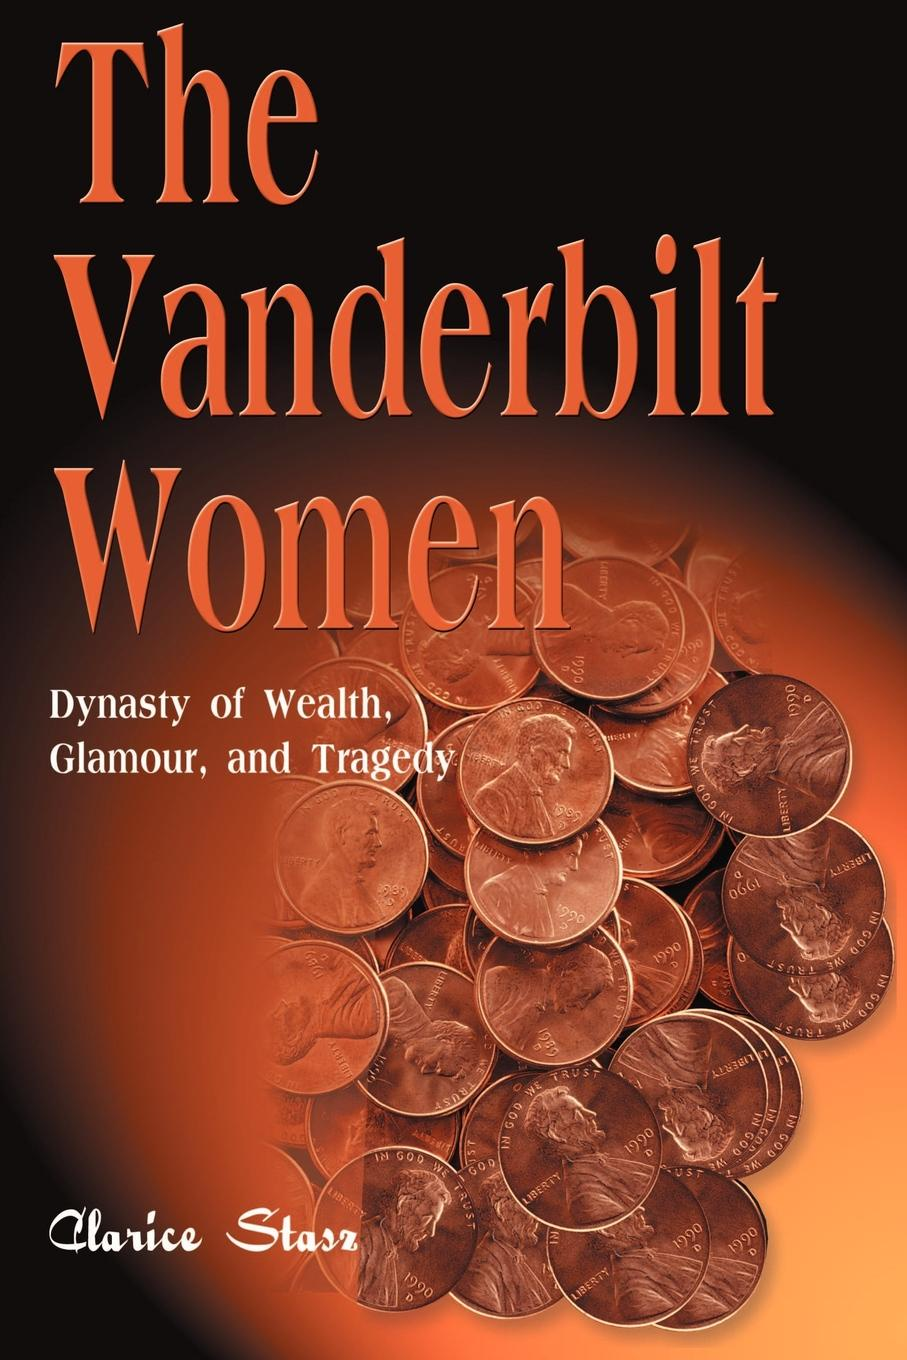 Фото - Clarice Stasz The Vanderbilt Women. Dynasty of Wealth, Glamour, and Tragedy theodore wong chronological tables of the chinese dynasties from the chow dynasty to the ching dynasty